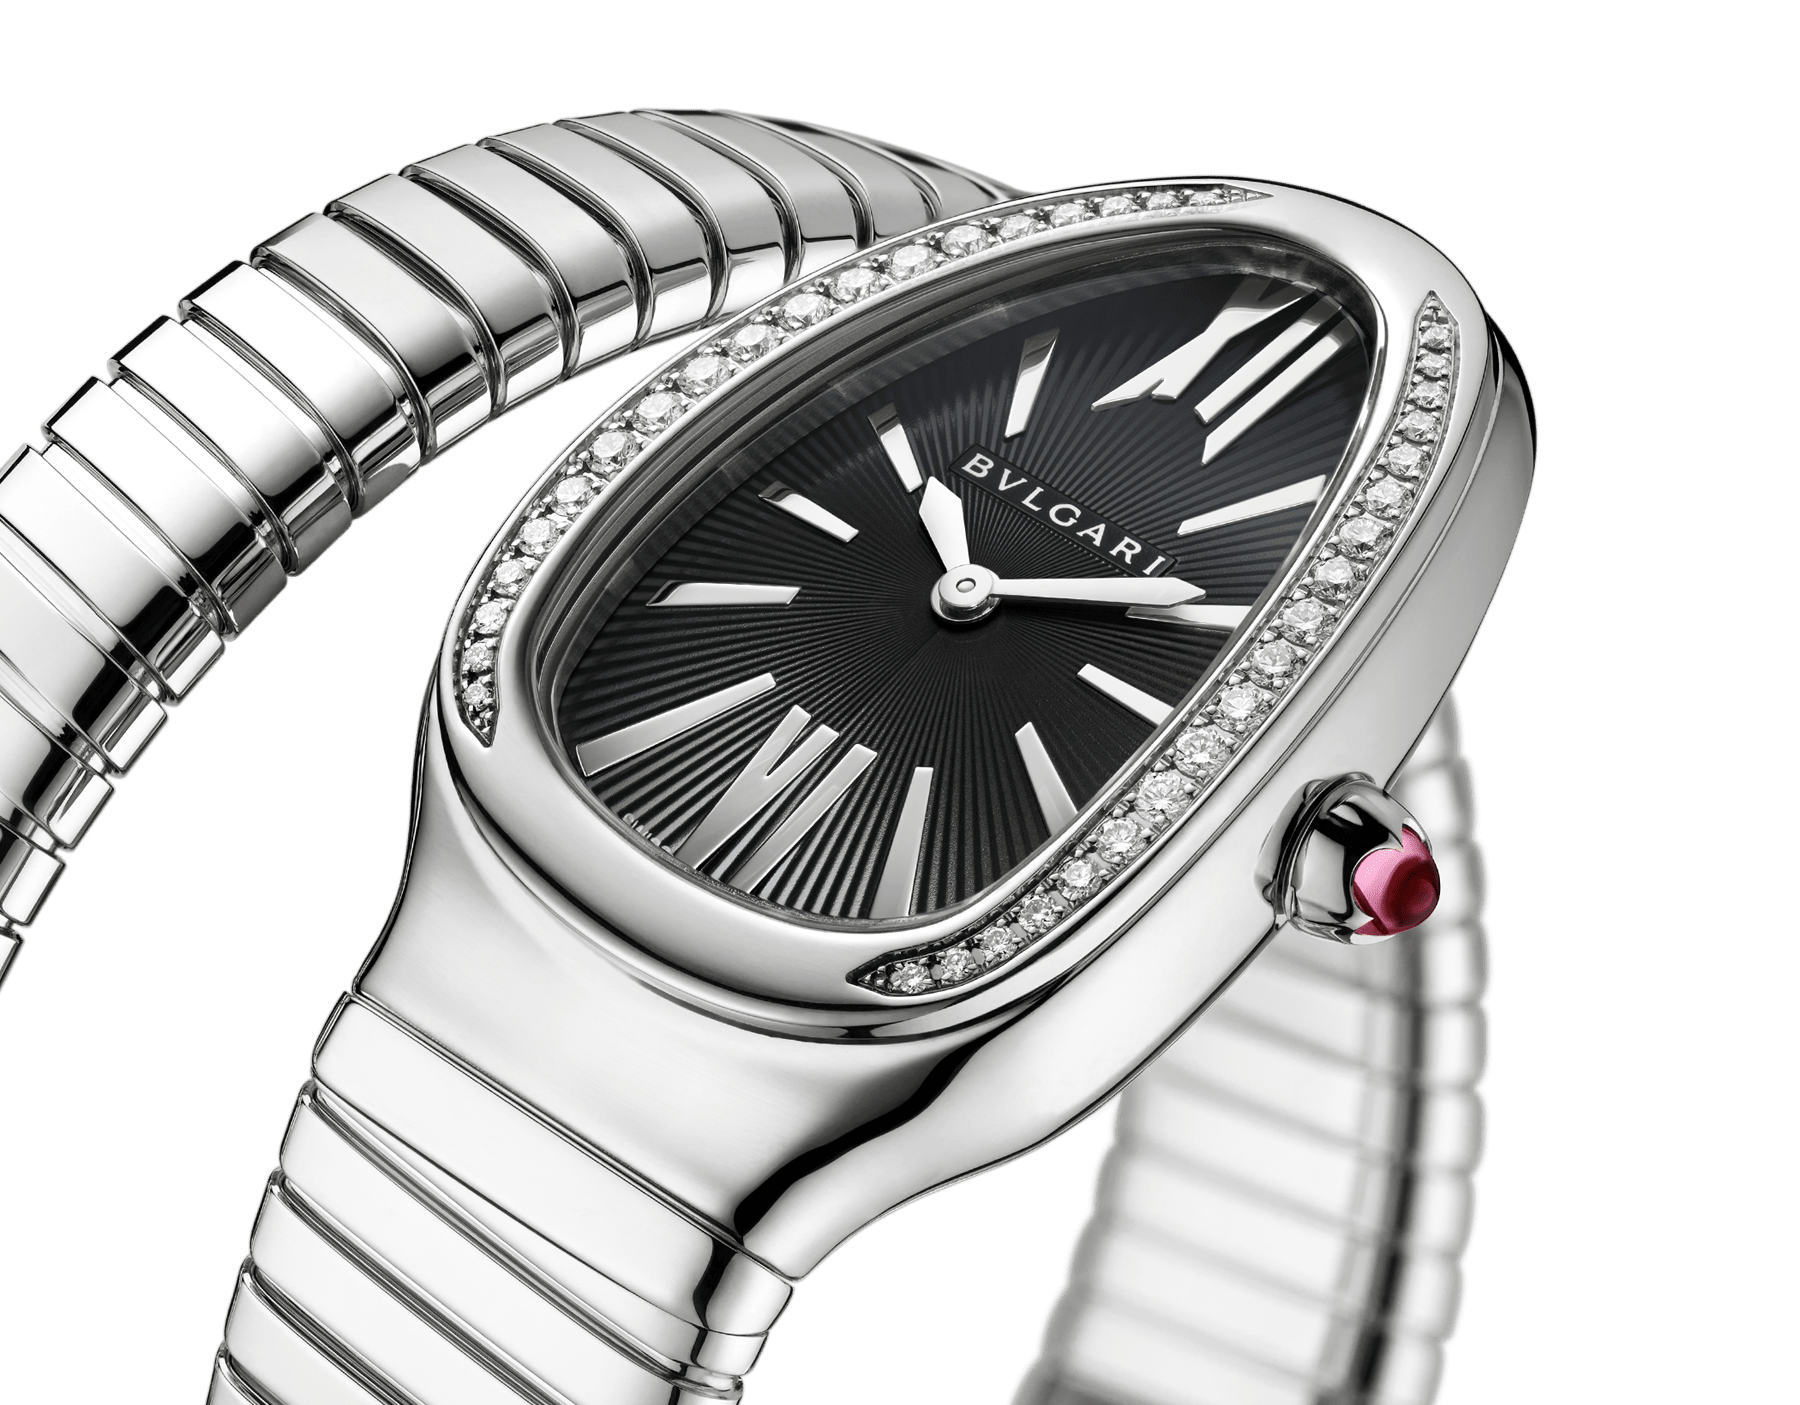 Serpenti Tubogas single spiral watch with stainless steel case and bracelet, bezel set with brilliant-cut diamonds and black dial with guilloché soleil treatment. Water-resistant up to 30 meters. Large size 103434 image 2